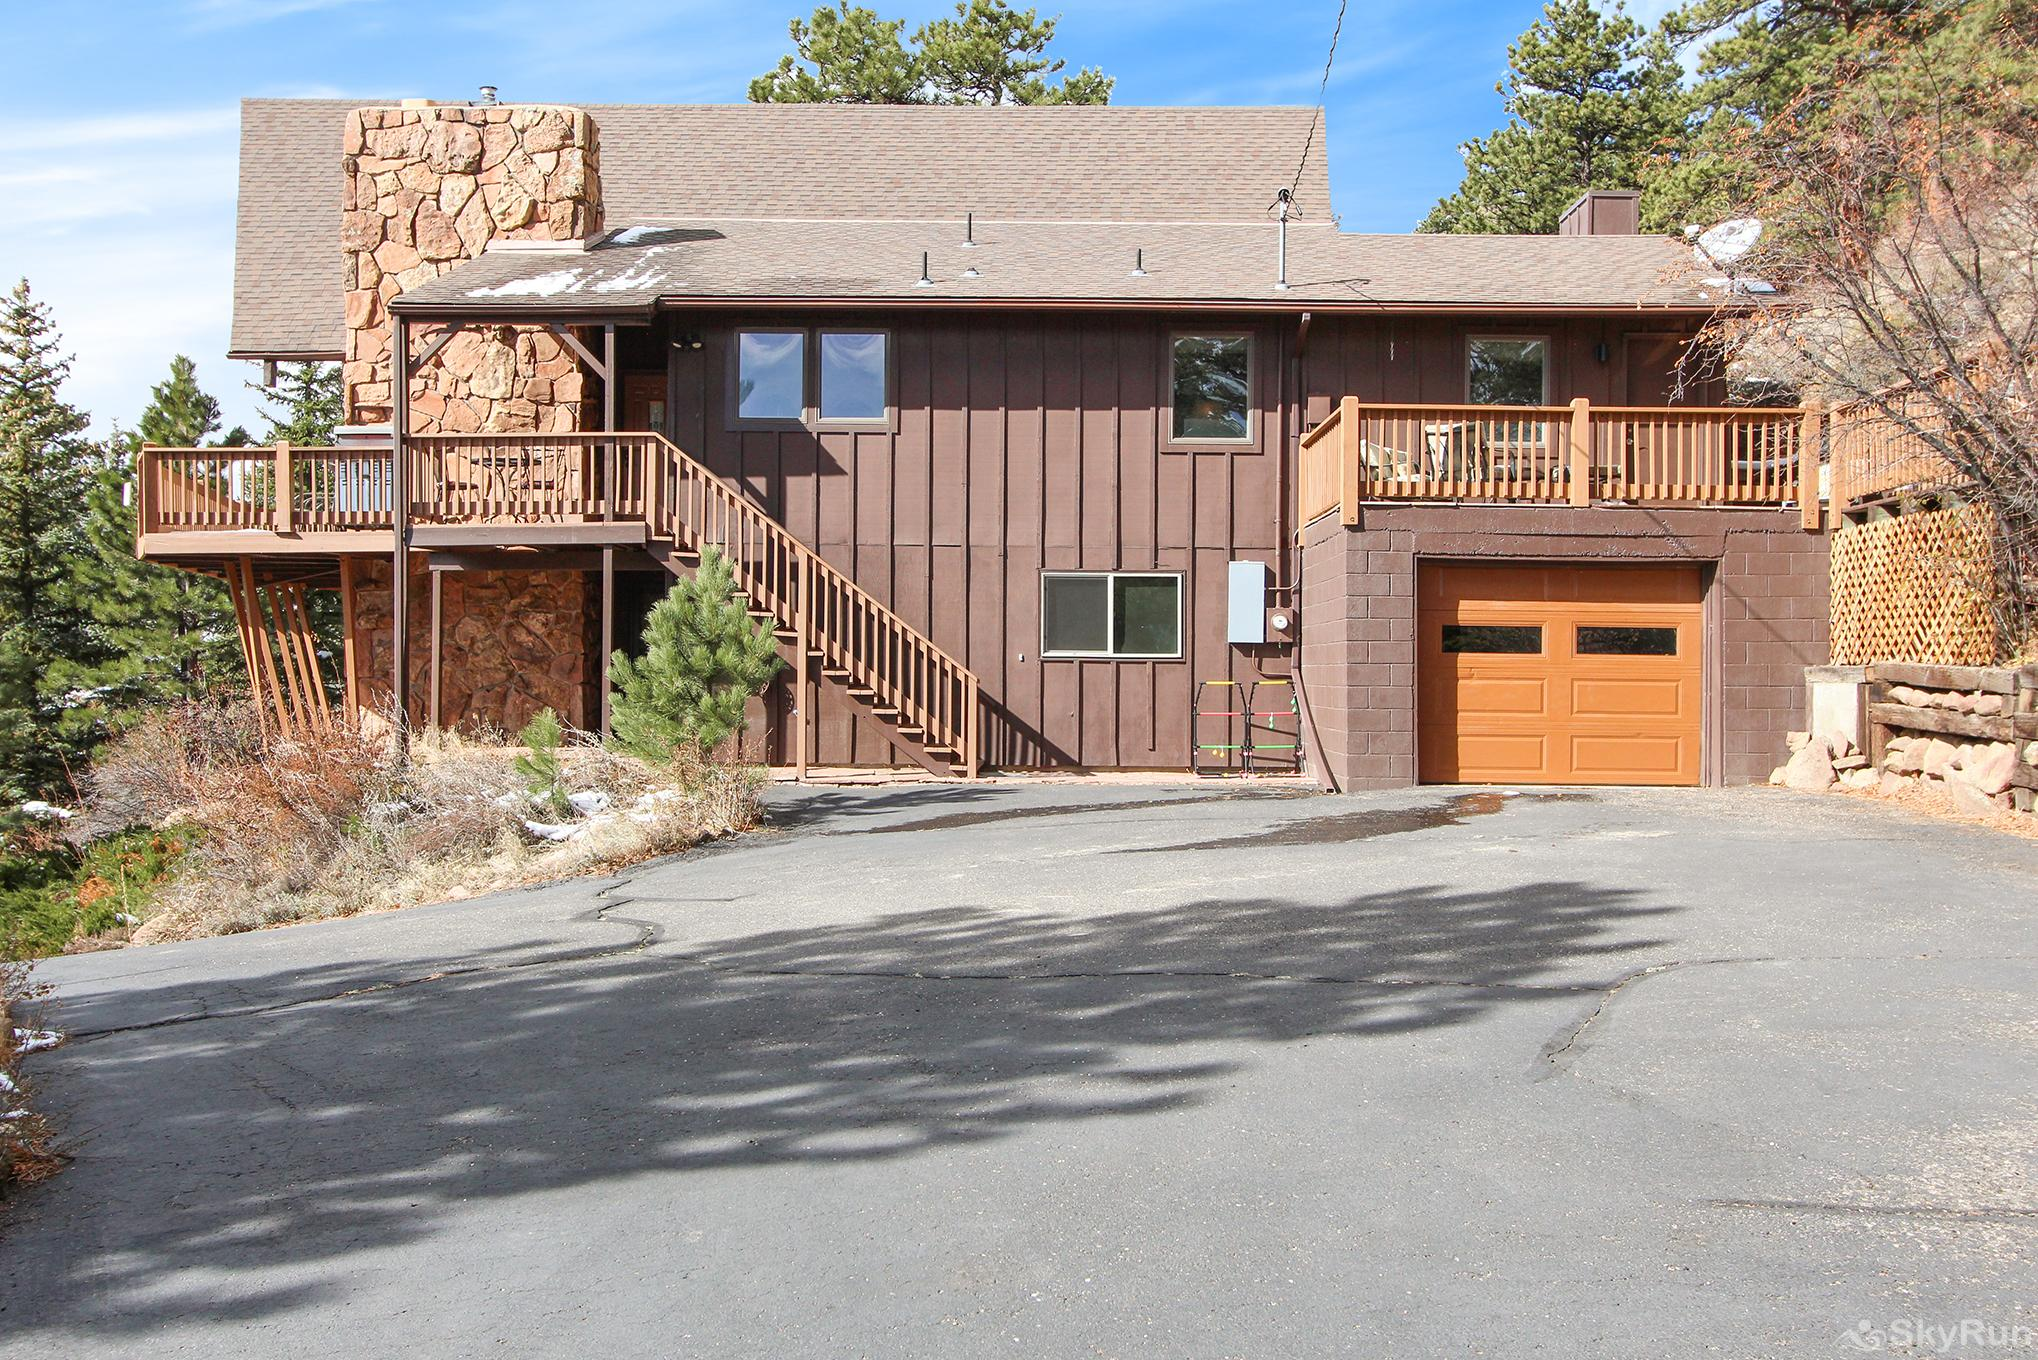 Deer Mountain Estate -- EV #3302 Deer Mountain Estate EV #3302